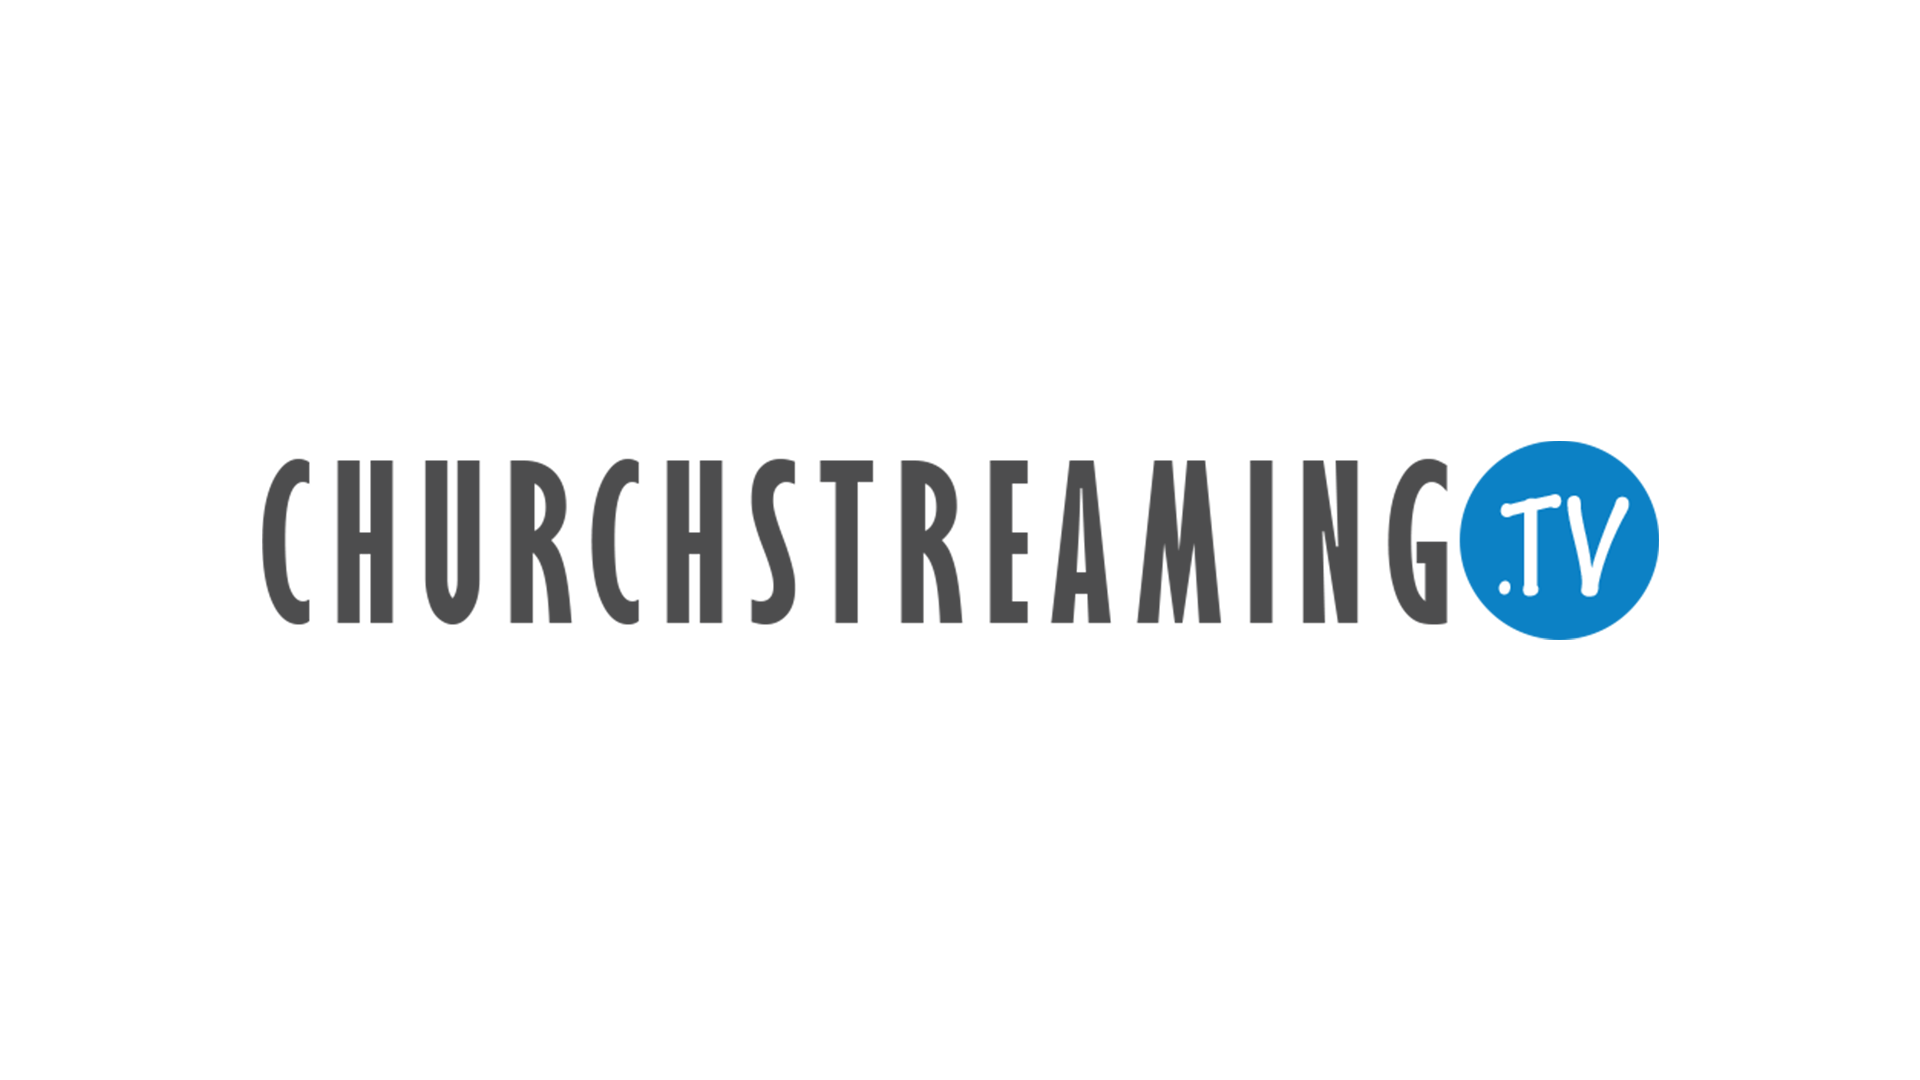 ChurchStreaming Logo